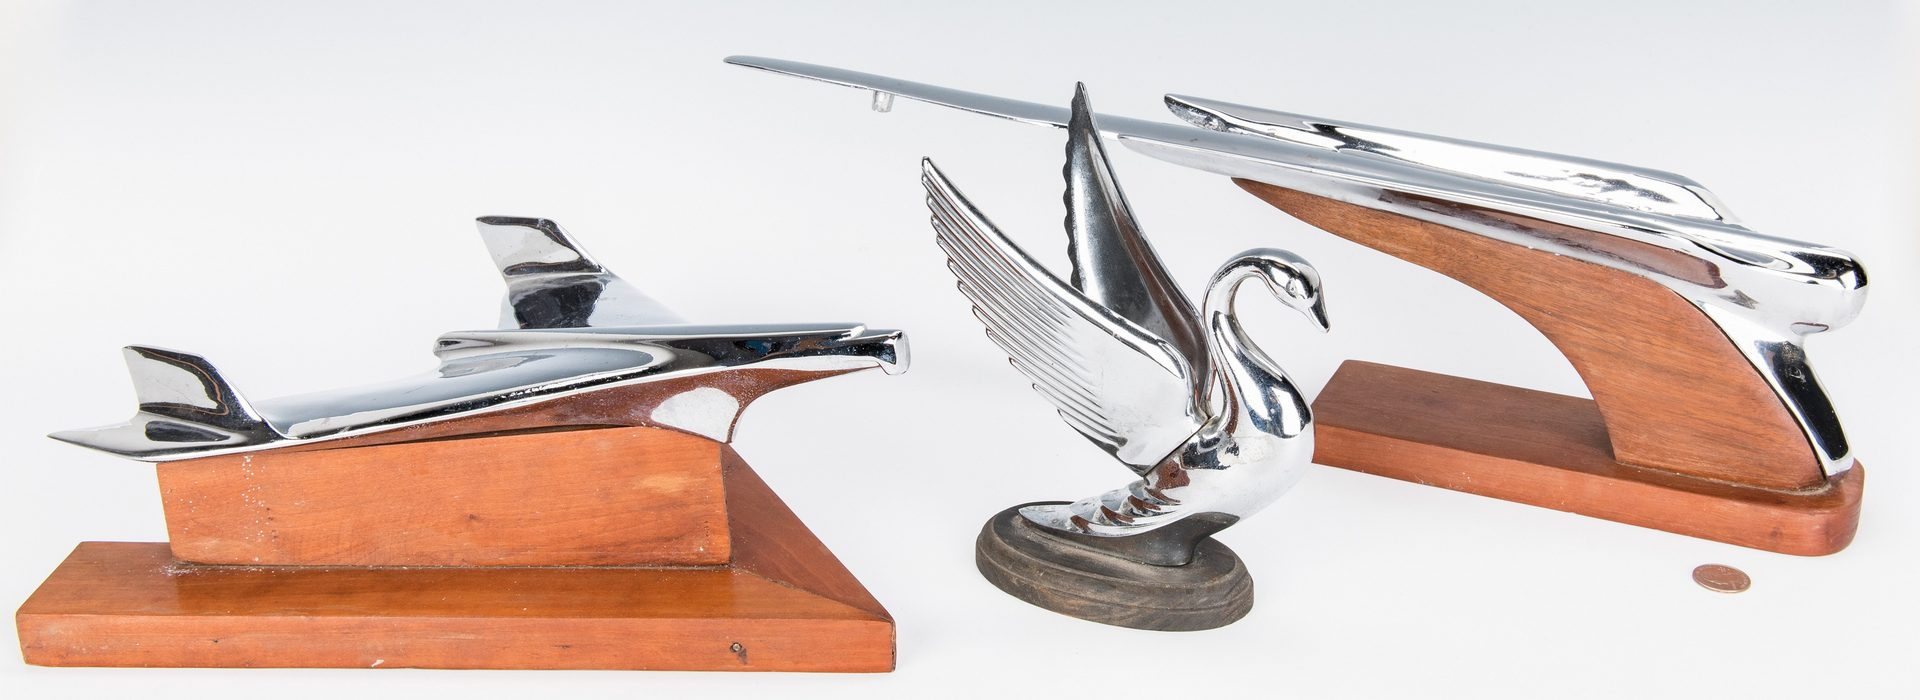 Lot 240: 3 Vintage Chrome Car Hood Ornaments